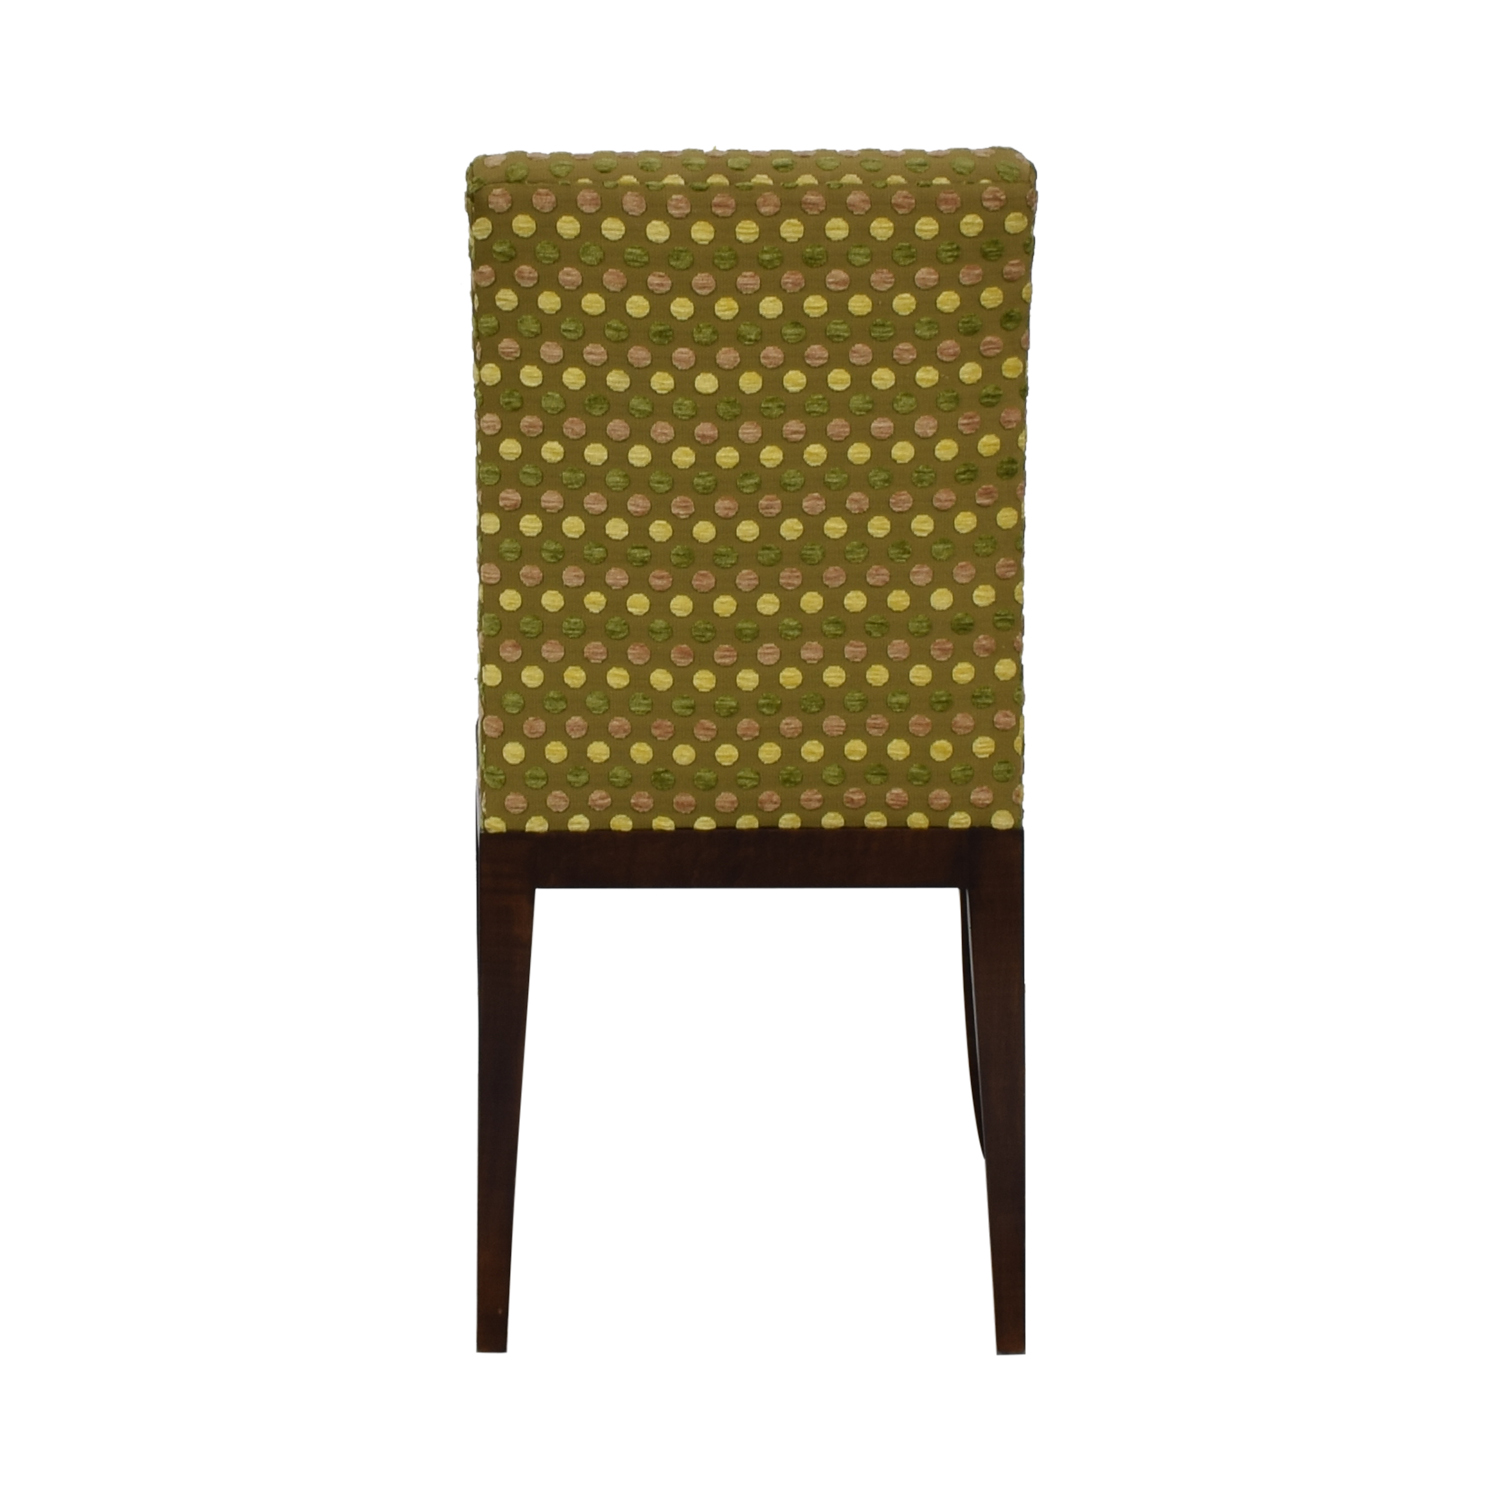 Furniture Masters Furniture Masters Polka Dot Chair nyc